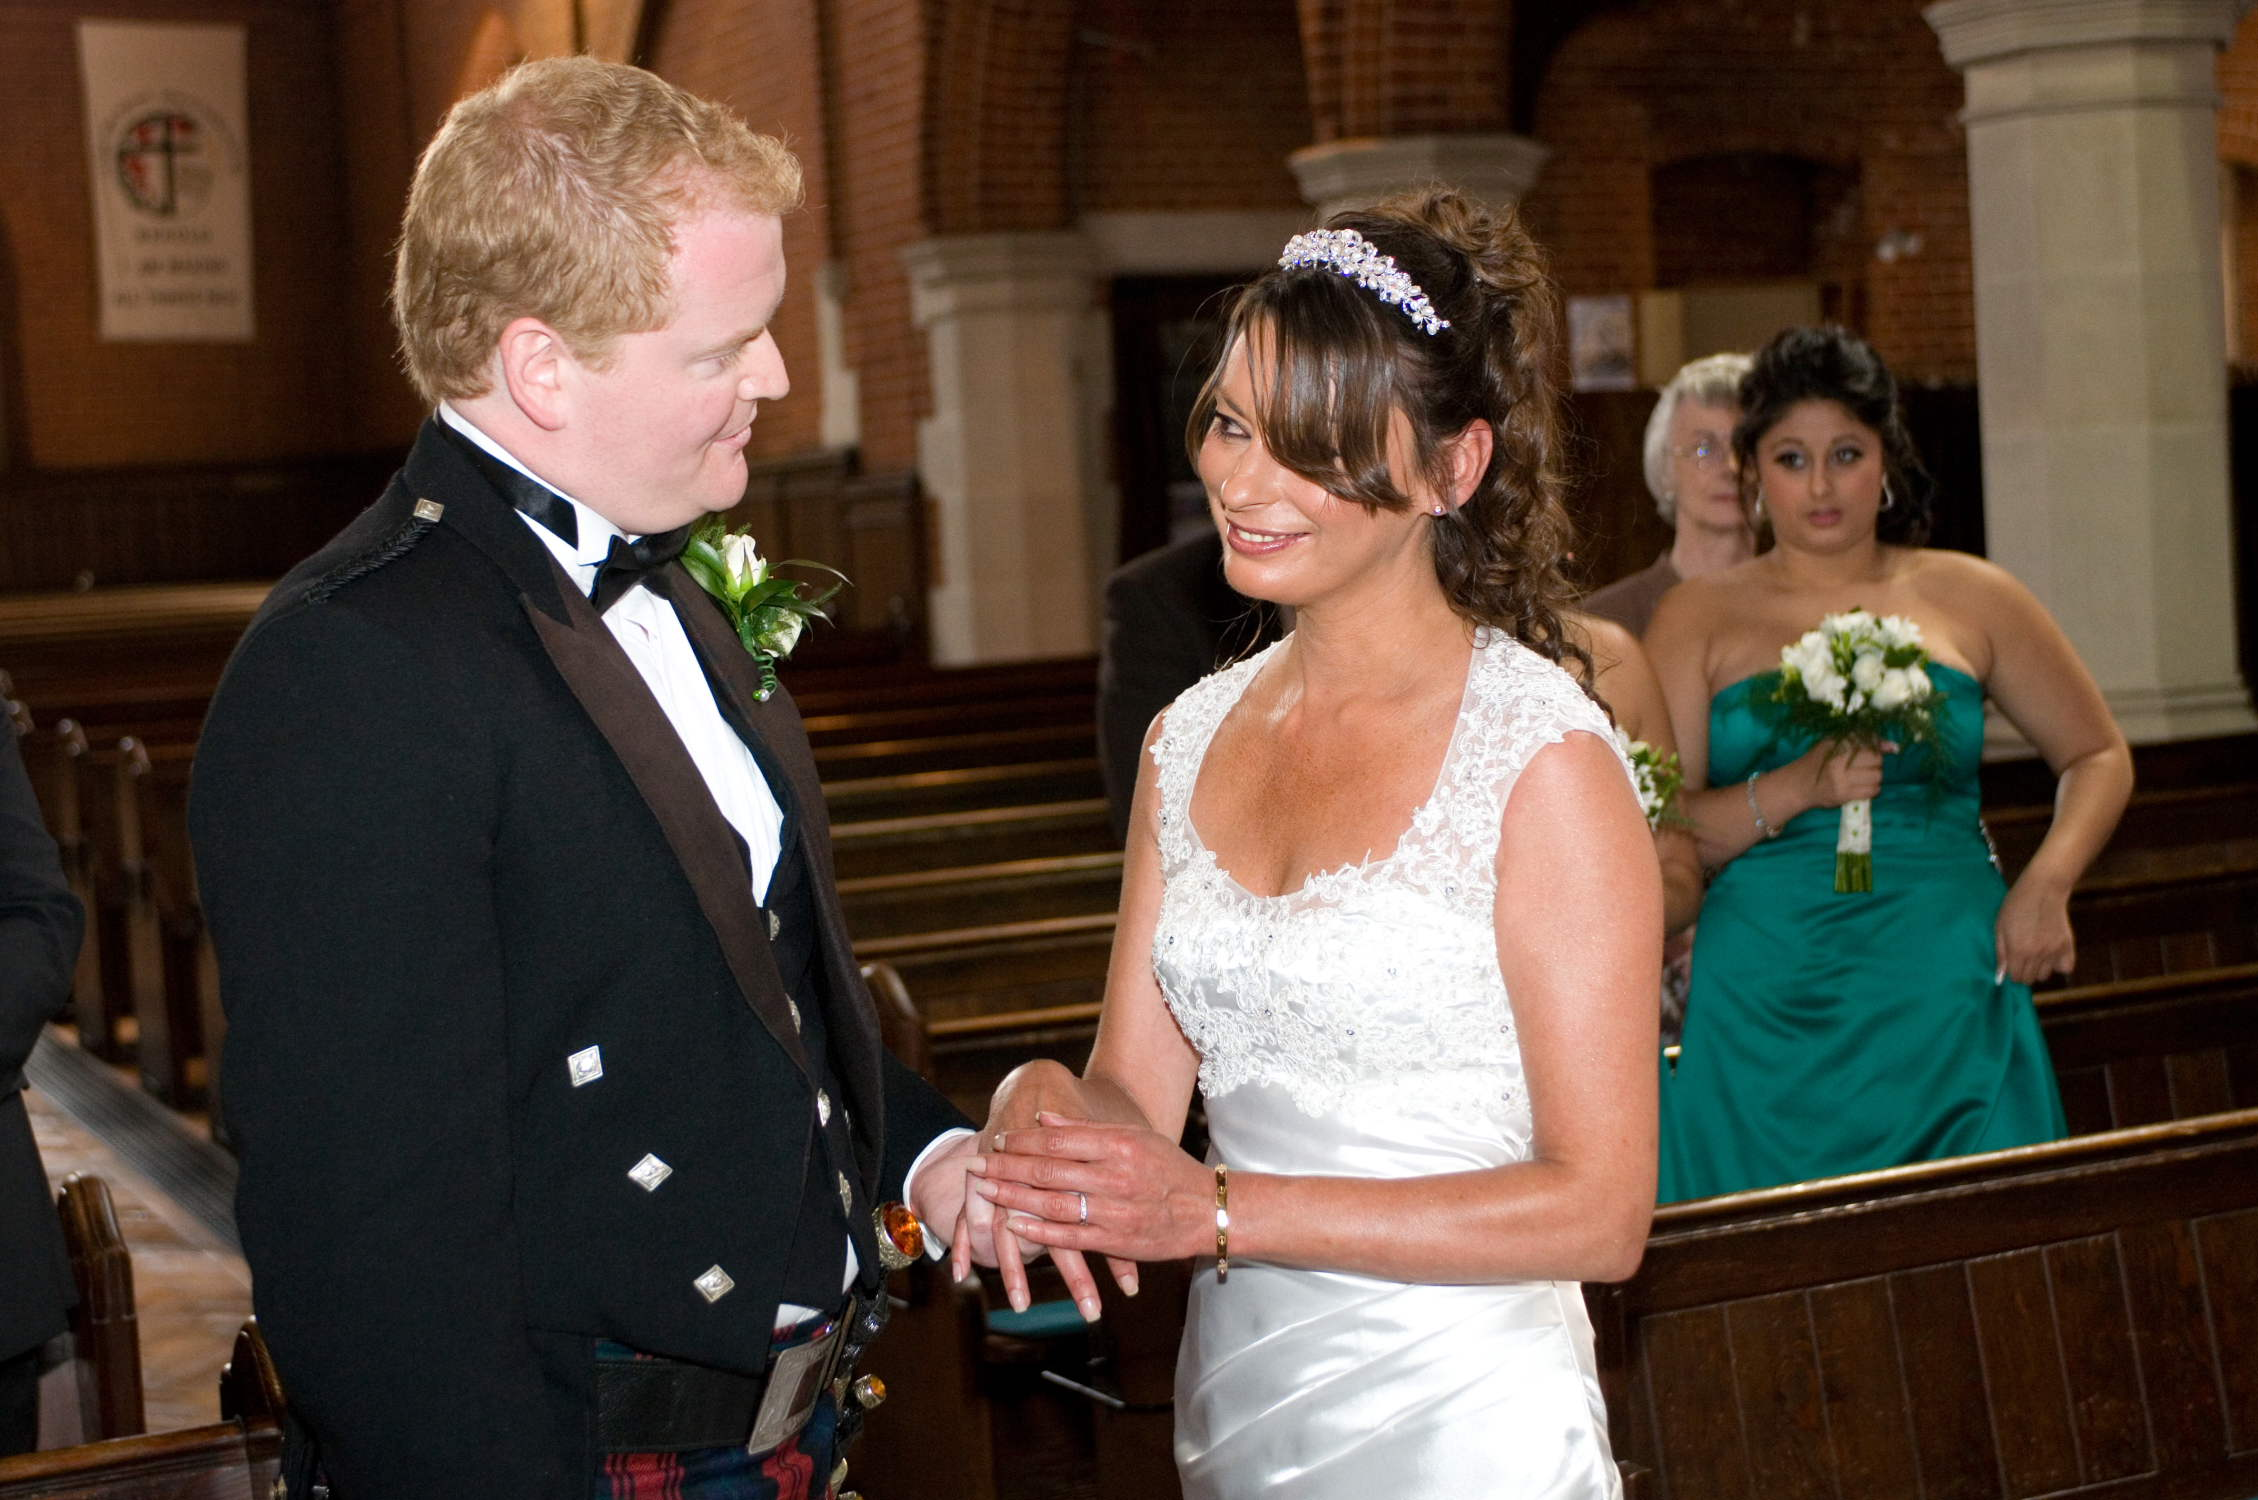 Birmingham wedding photographers with cheap register office photography packages